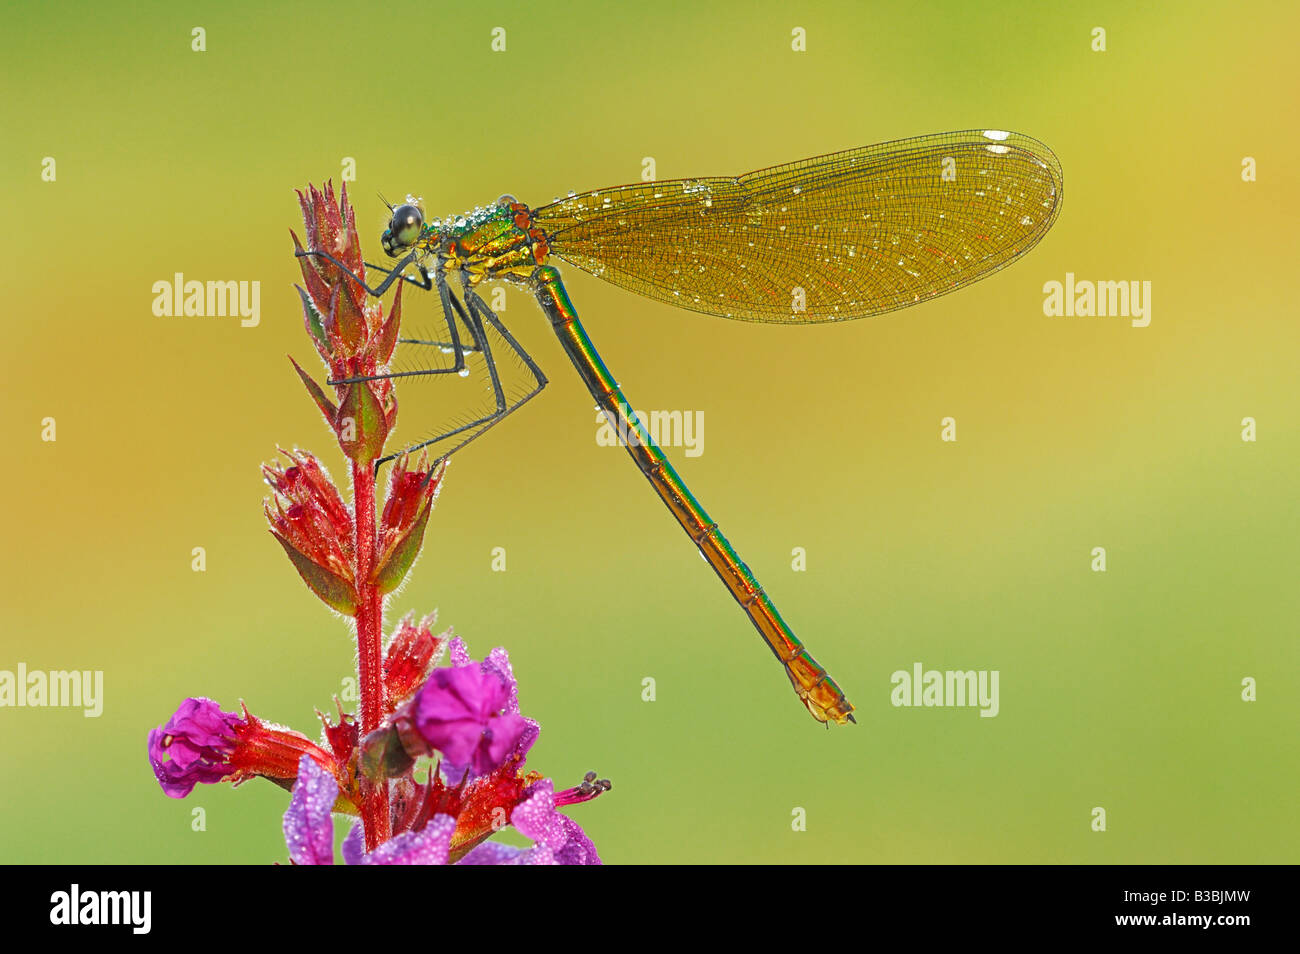 Banded Demoiselle (Calopteryx splendens), female perched on flower dew covered, Zug, Switzerland Stock Photo